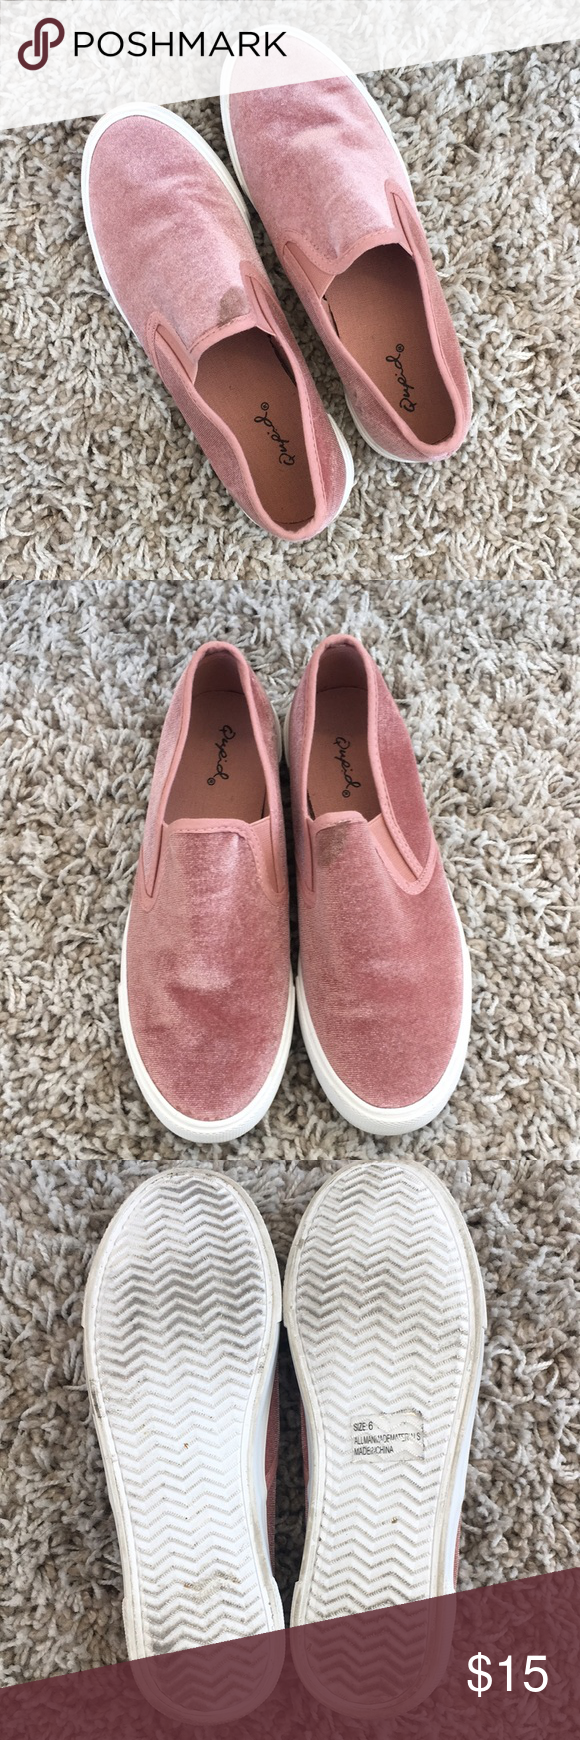 Light Pink Qupid Slip On  Shoes Sneakers Customer Support And